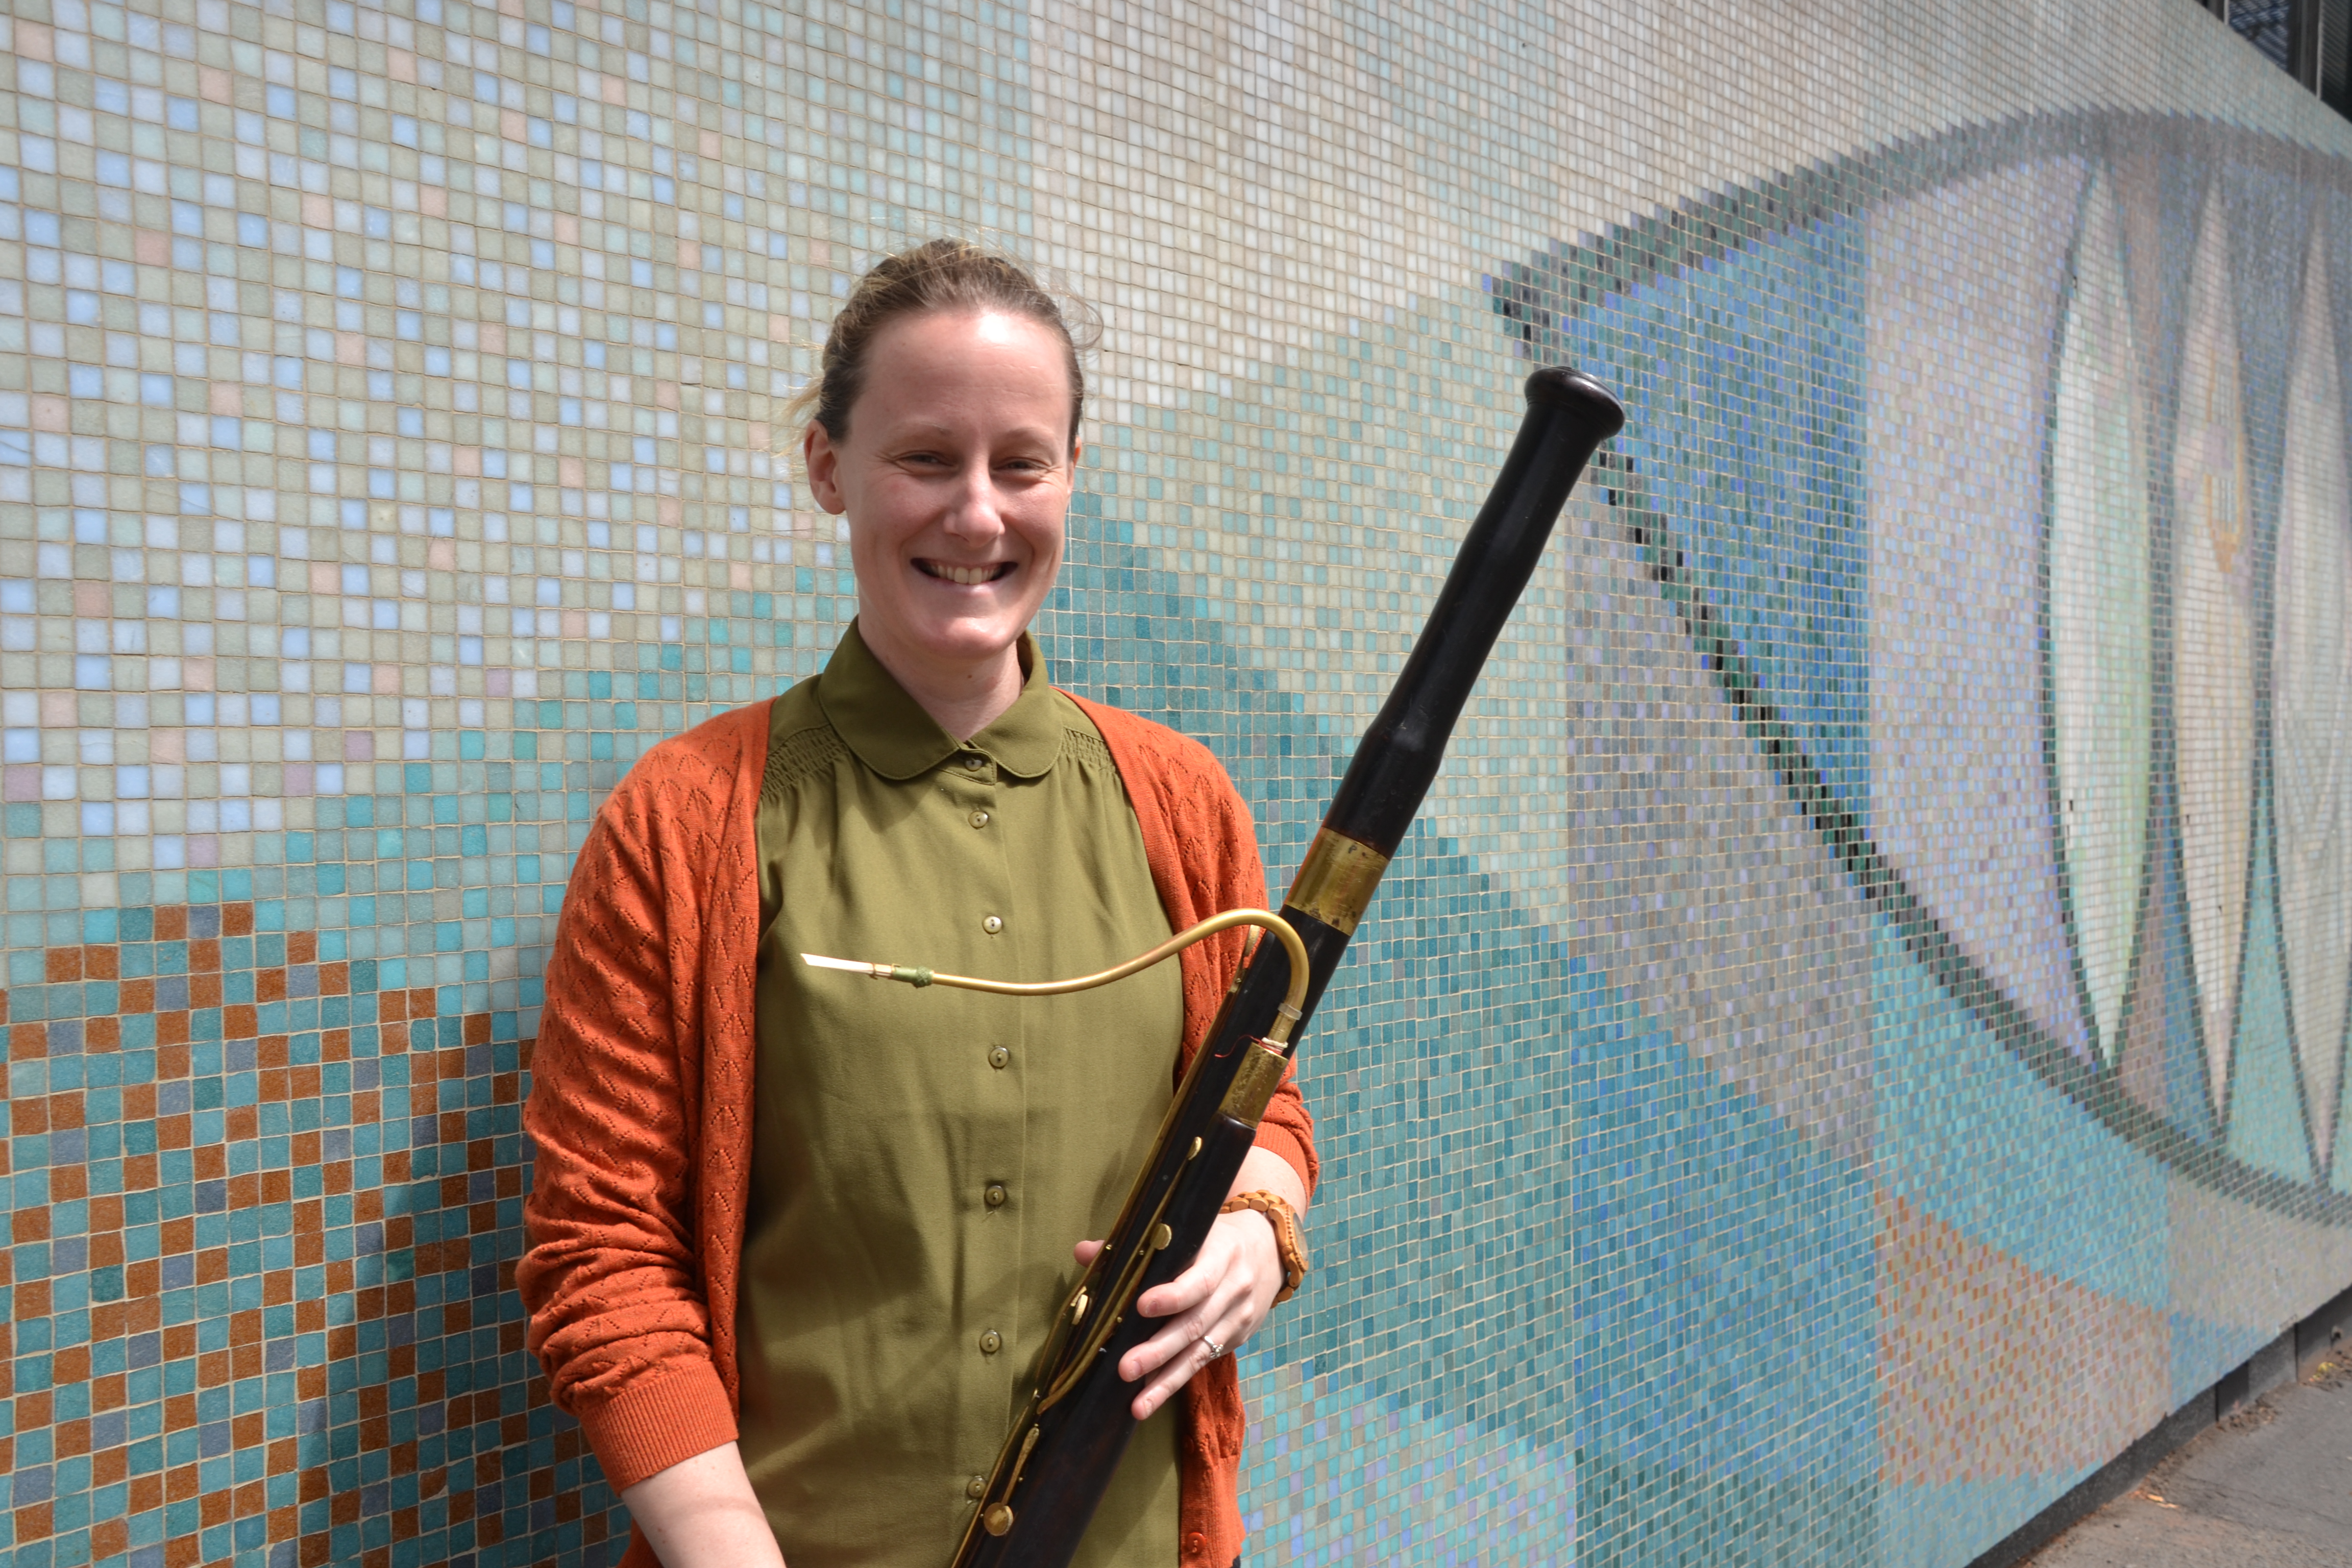 Outstanding modern talent with an ancient instrument recognised with Australia Council grant